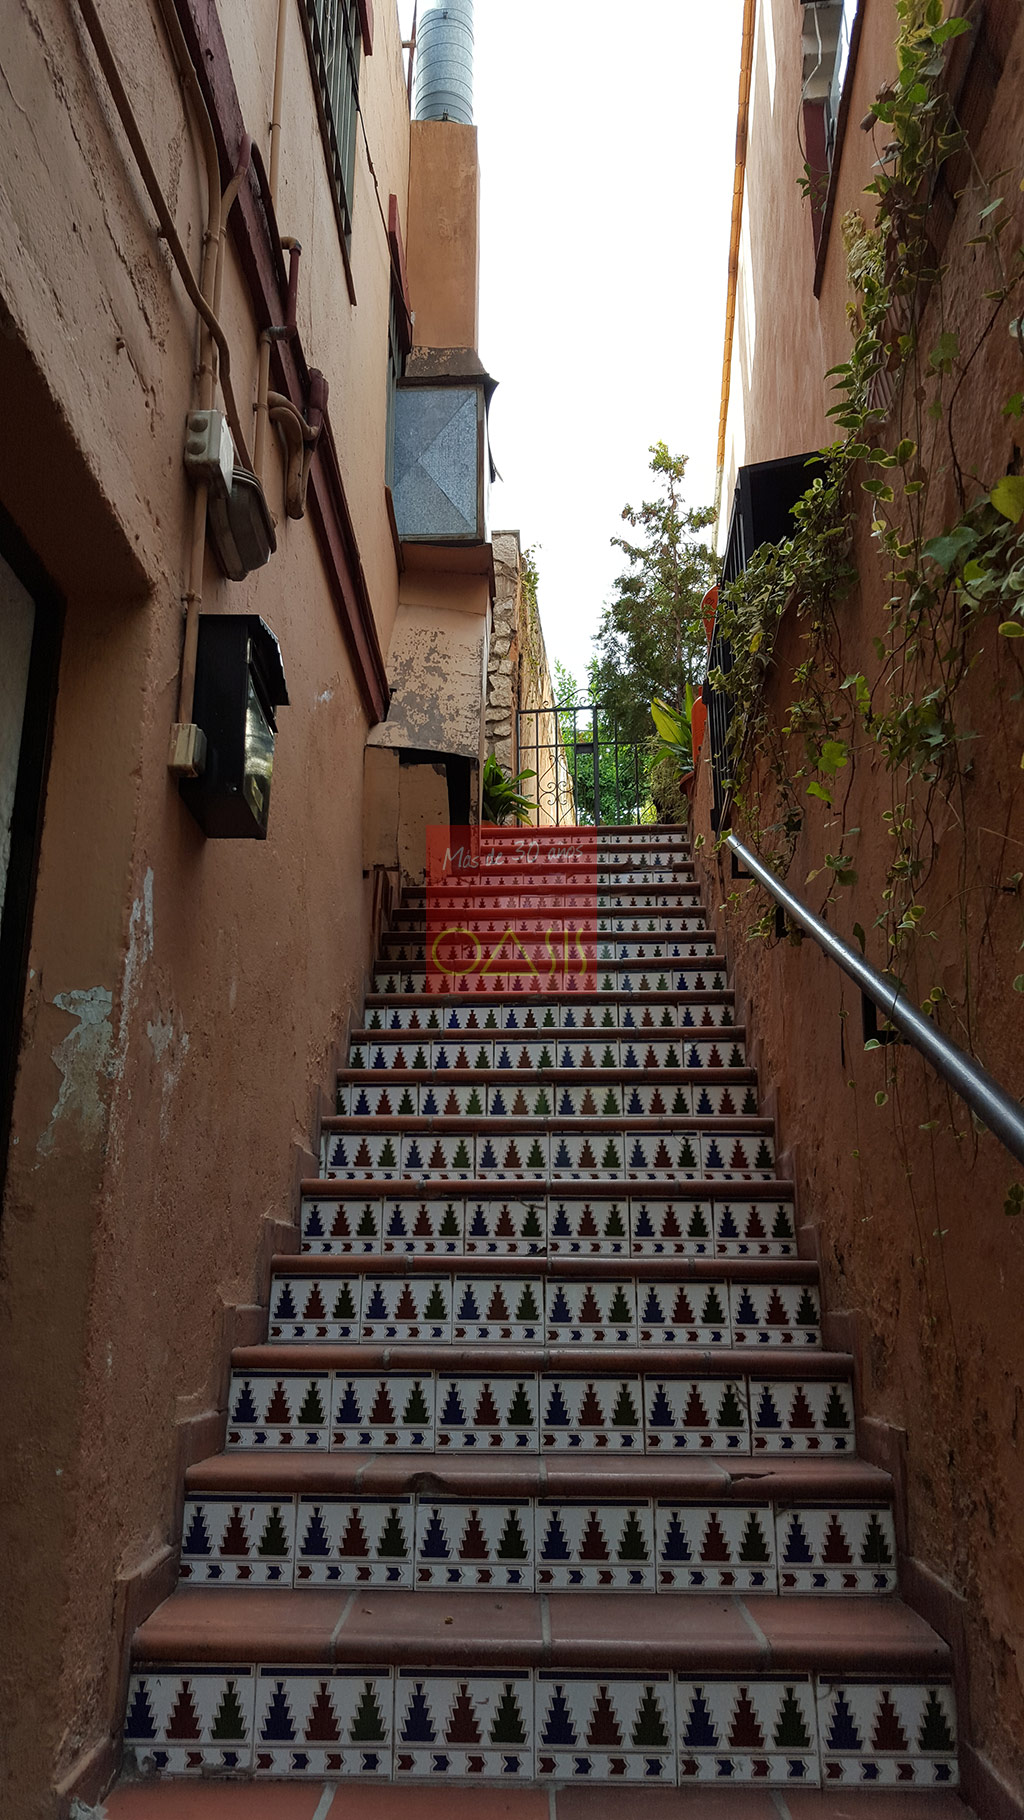 Excellent oportunity for investment near the entrance of the Alhambra - Stairs to the main house